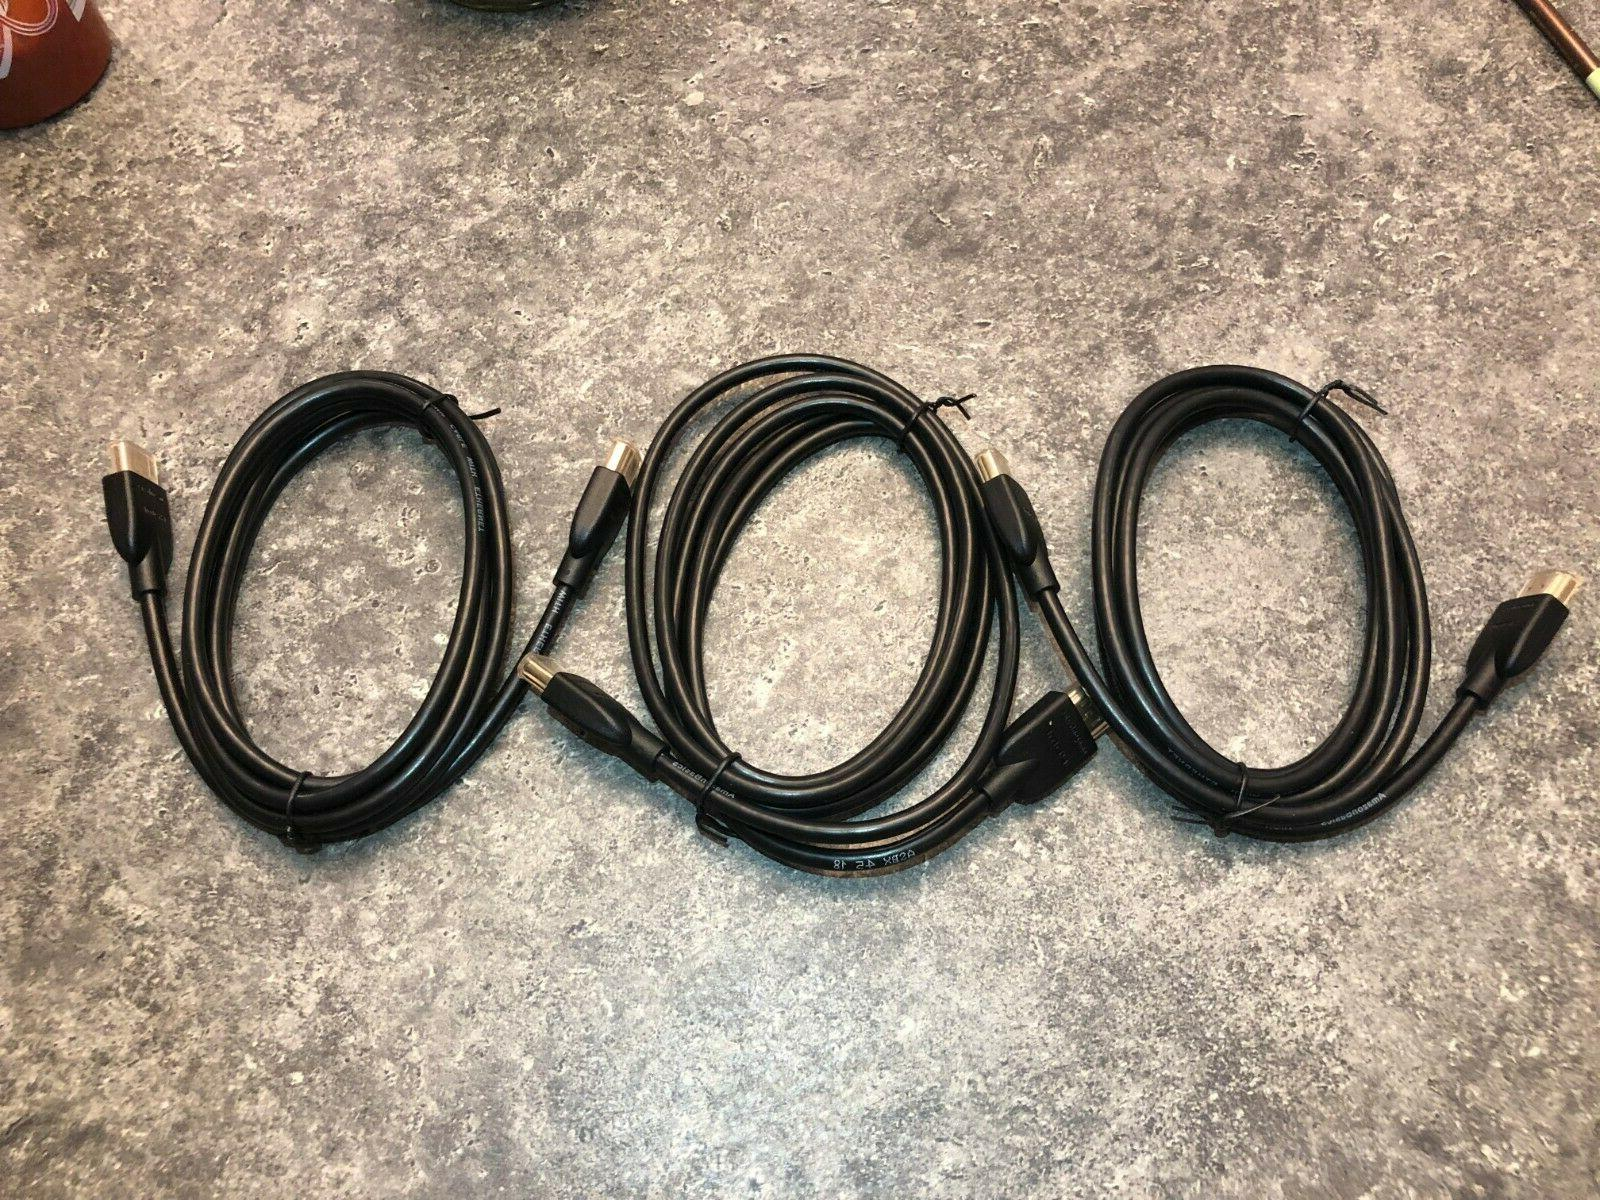 AmazonBasics High-Speed HDMI Cable - 6 Feet  Single Pack